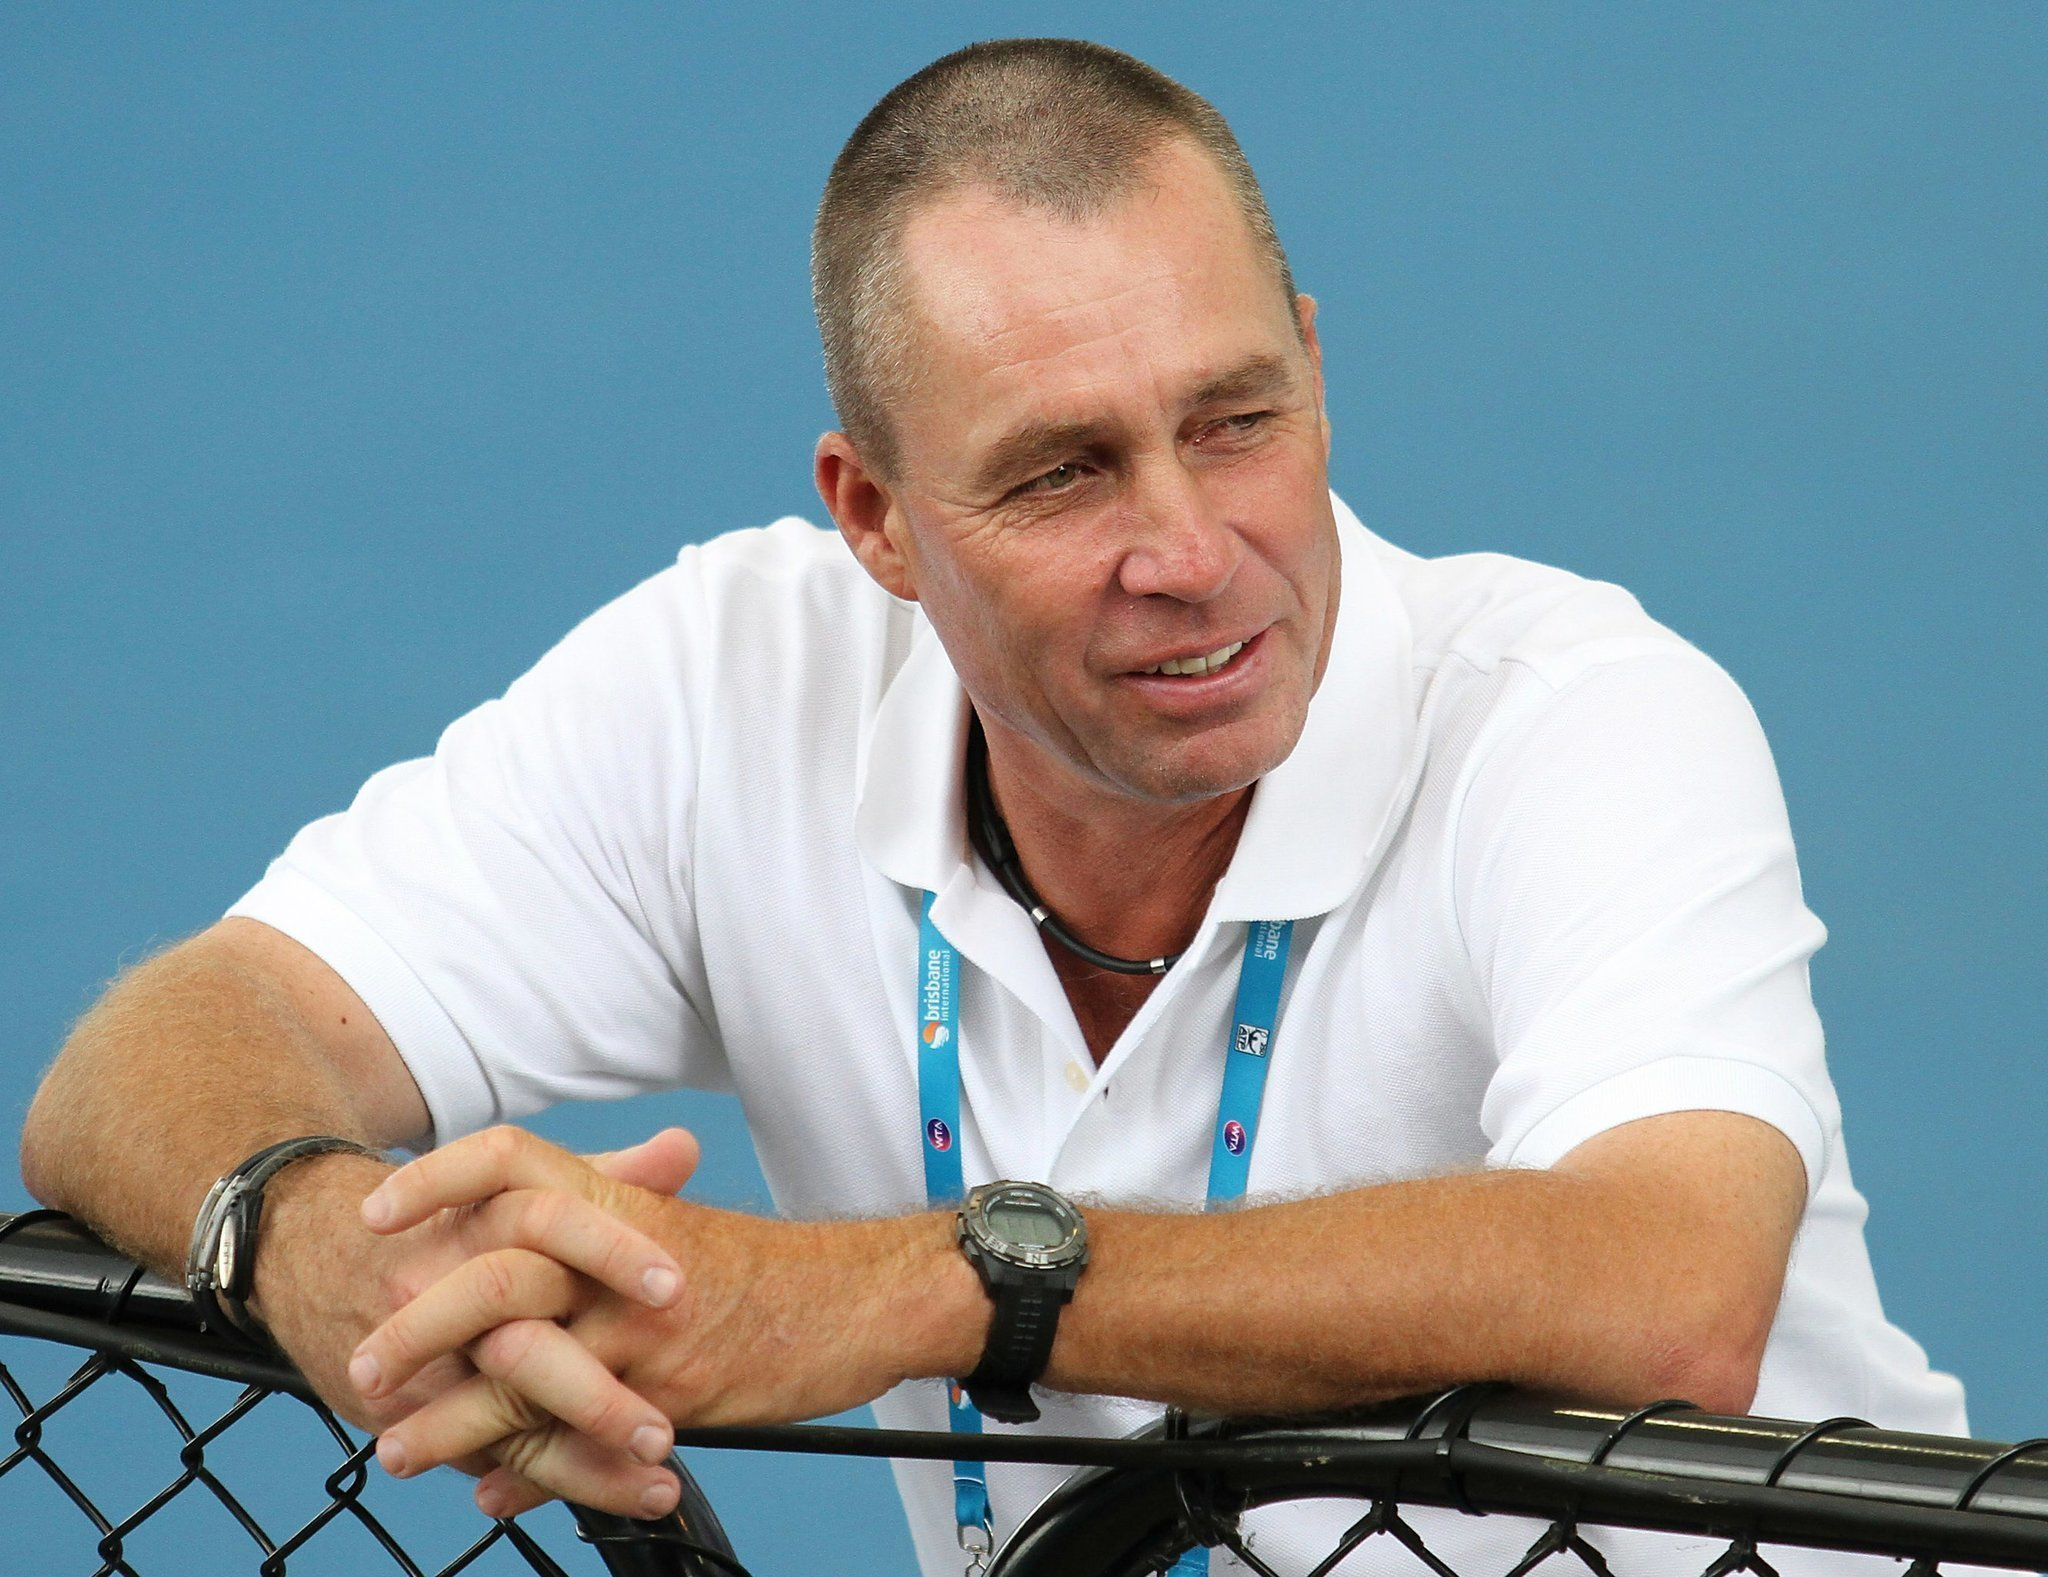 8 time Slam champ Ivan Lendl helps USTA try to develop stars The